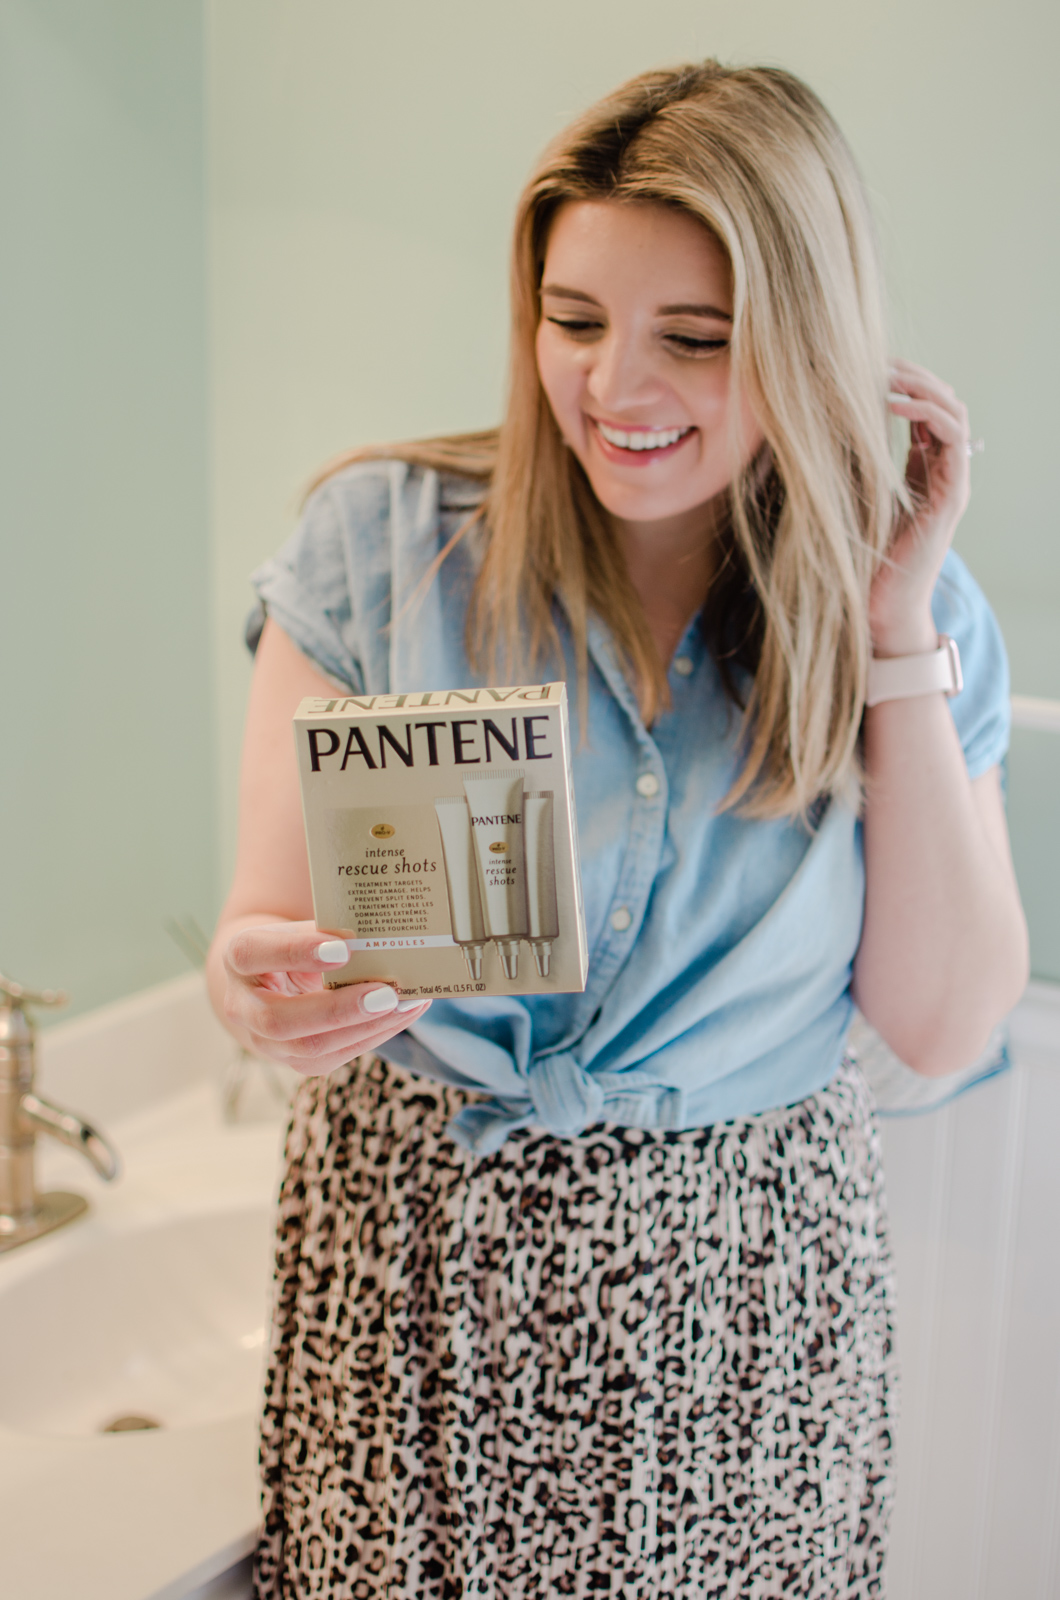 Richmond Virginia blogger, Lauren Dix, shares how she deep conditioners her hair using Pantene Intense Rescue Shots.